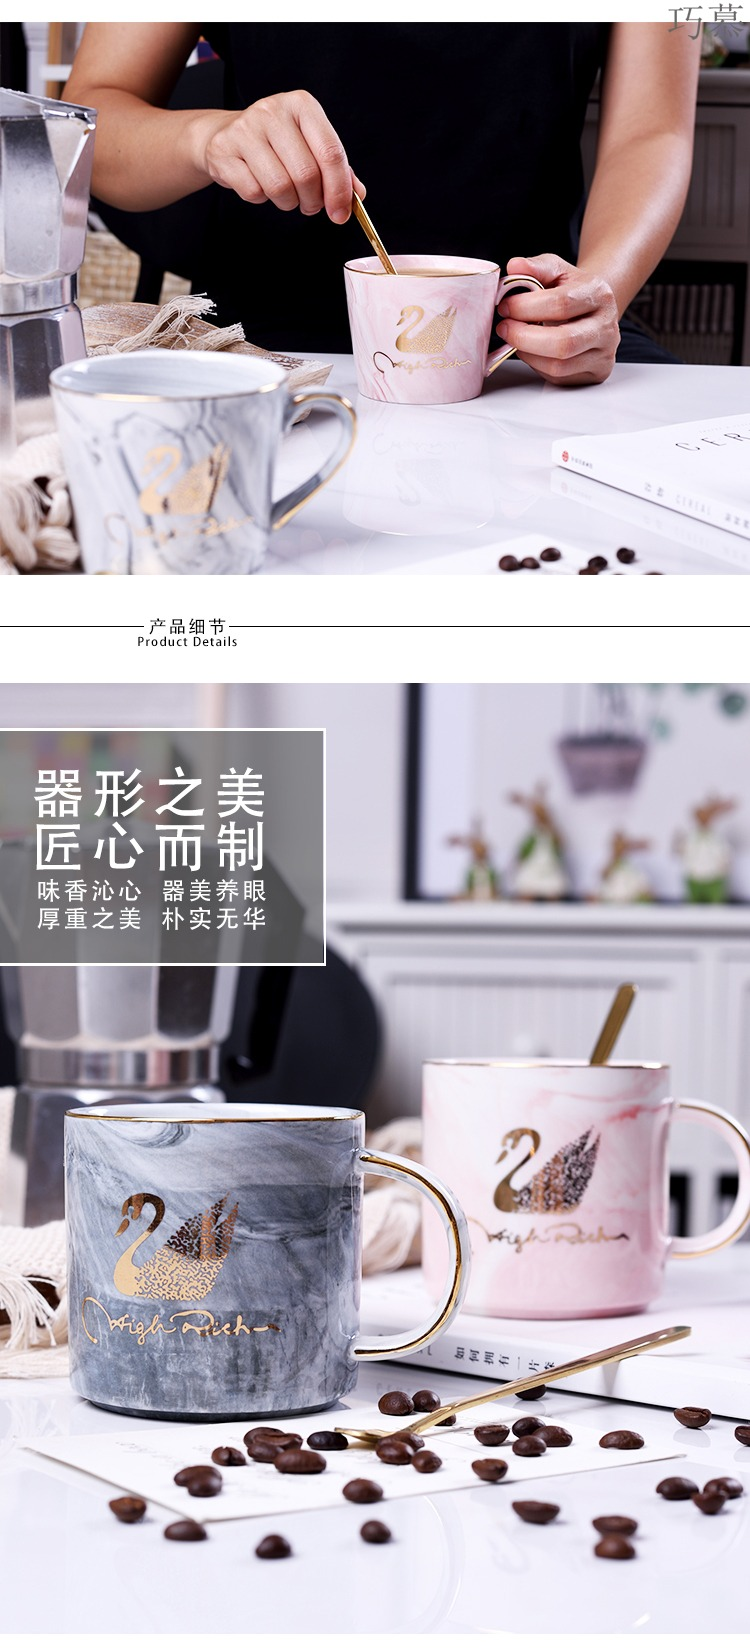 Qiao mu Nordic creative office glass marble paint ceramic keller with spoon, milk tea cups of coffee cup